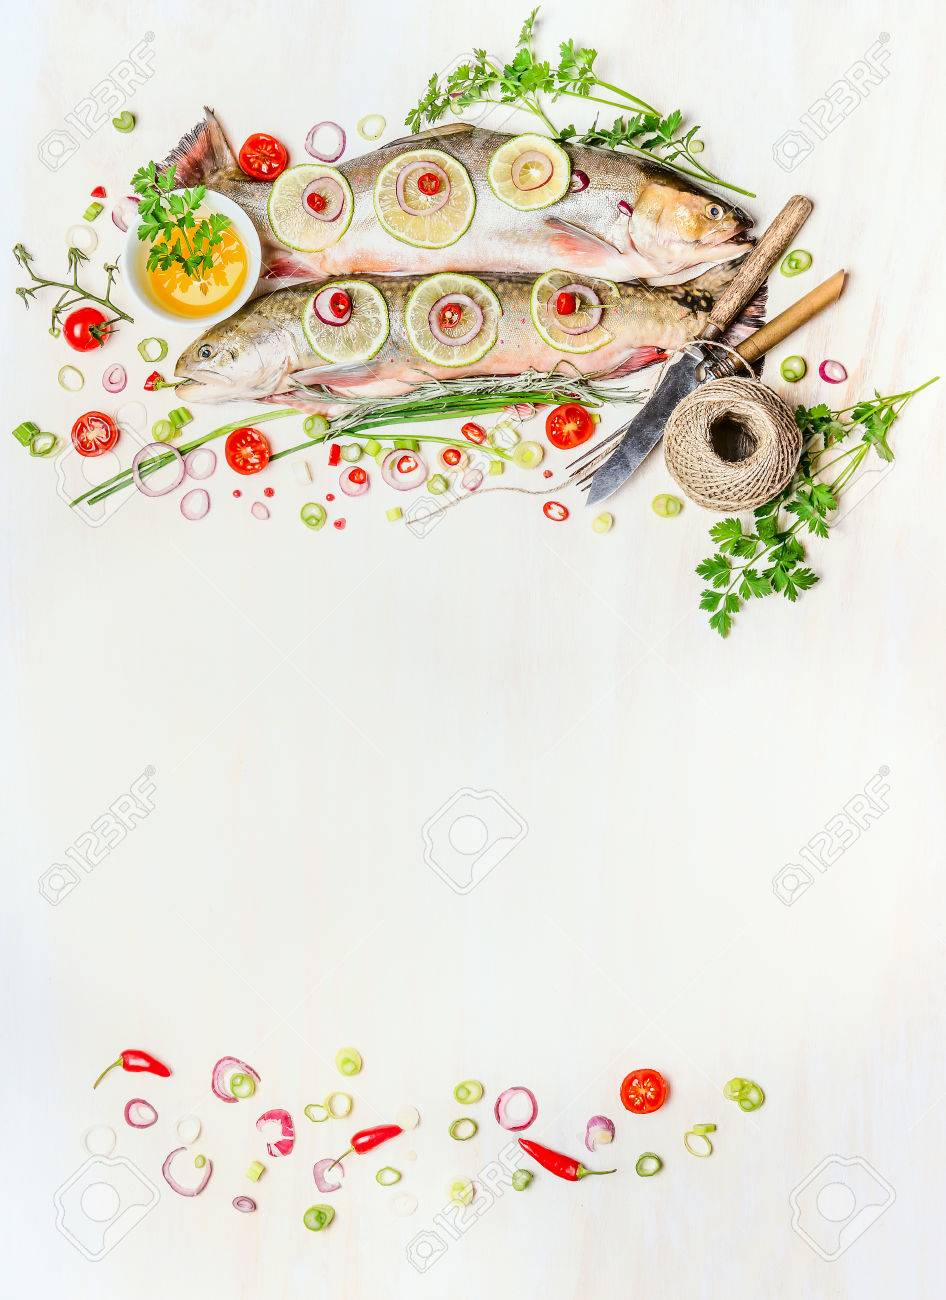 Fish food background with raw whole Fish , fresh delicious cooking ingredients and cutlery on white wooden , top view, frame. Healthy food or diet concept. Fish dishes. - 54155040